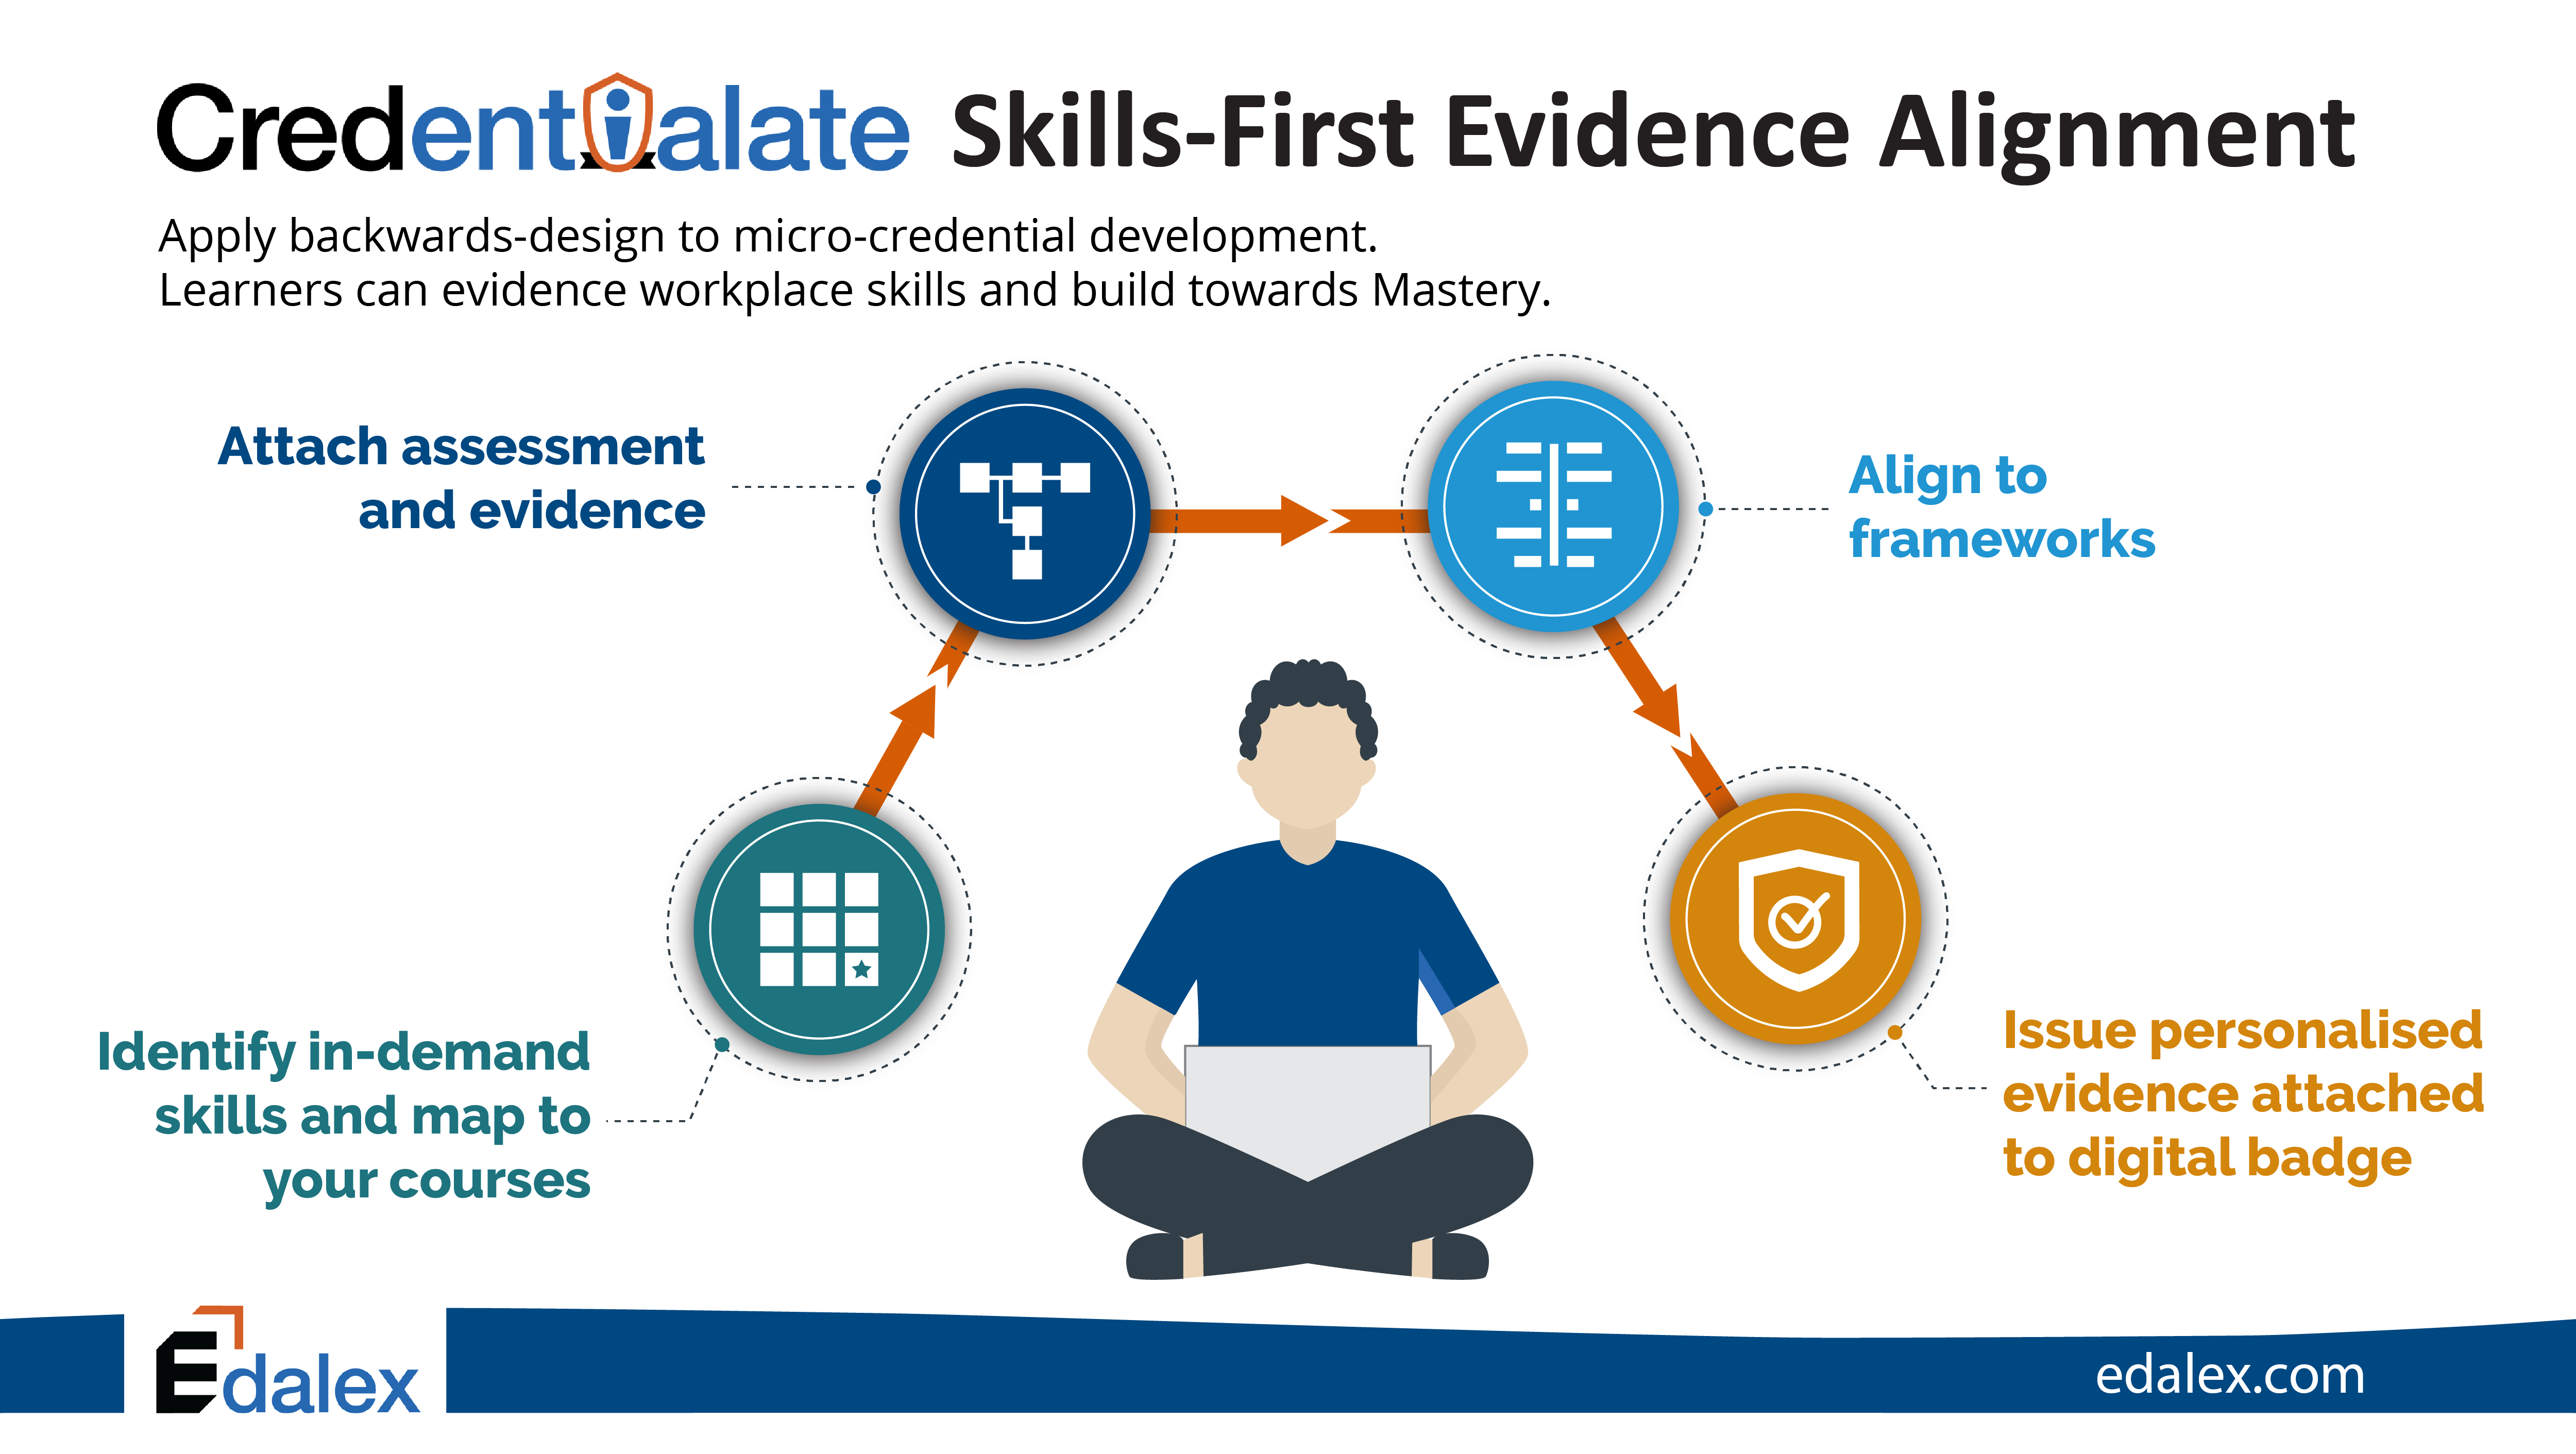 Credentialate Skills-First Evidence Alignment